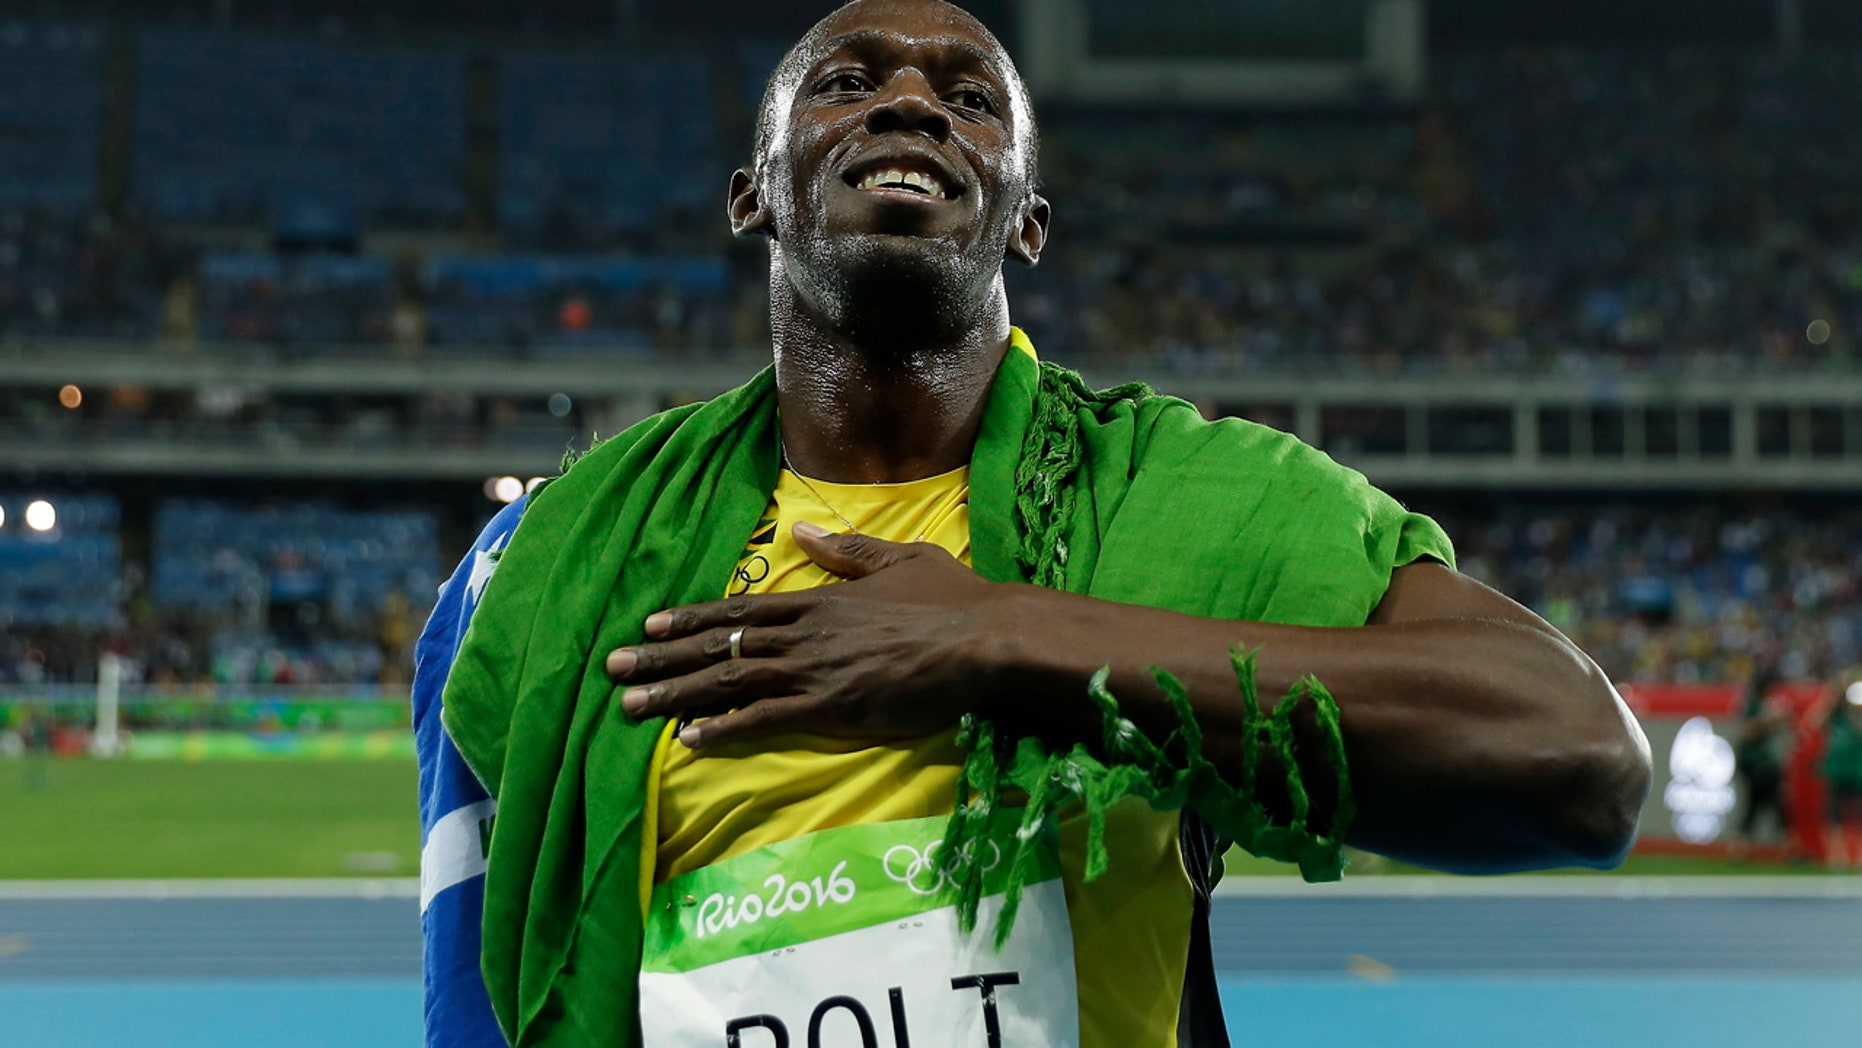 Usain Bolt from Jamaica celebrates after winning the gold medal in the men's 200-meter final, during the athletics competitions of the 2016 Summer Olympics at the Olympic stadium in Rio de Janeiro, Brazil, Thursday, Aug. 18, 2016. (AP Photo/Matt Slocum)